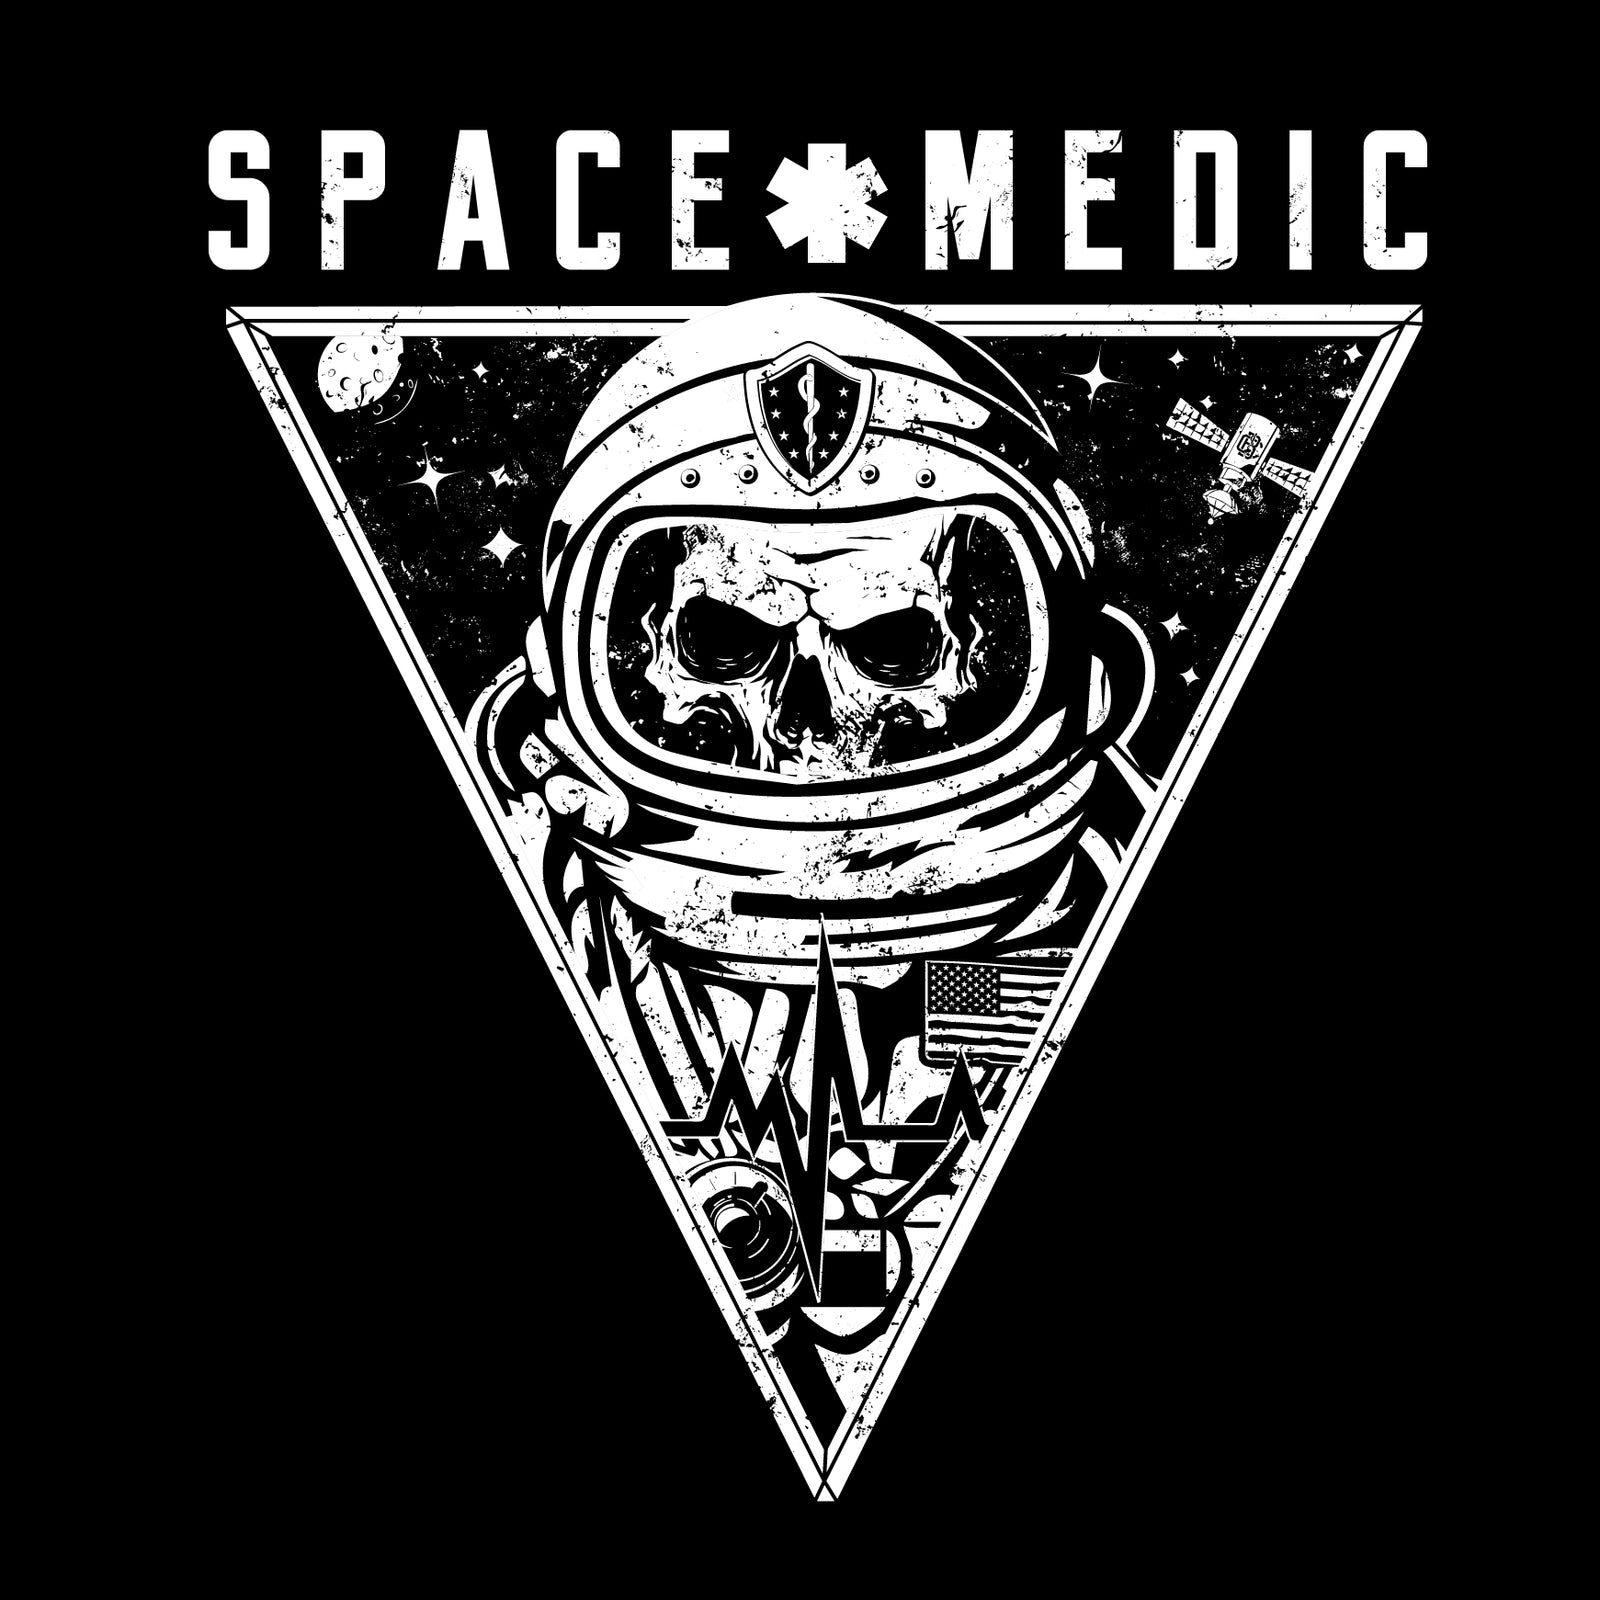 Space Medic - Black Cloud Apparel